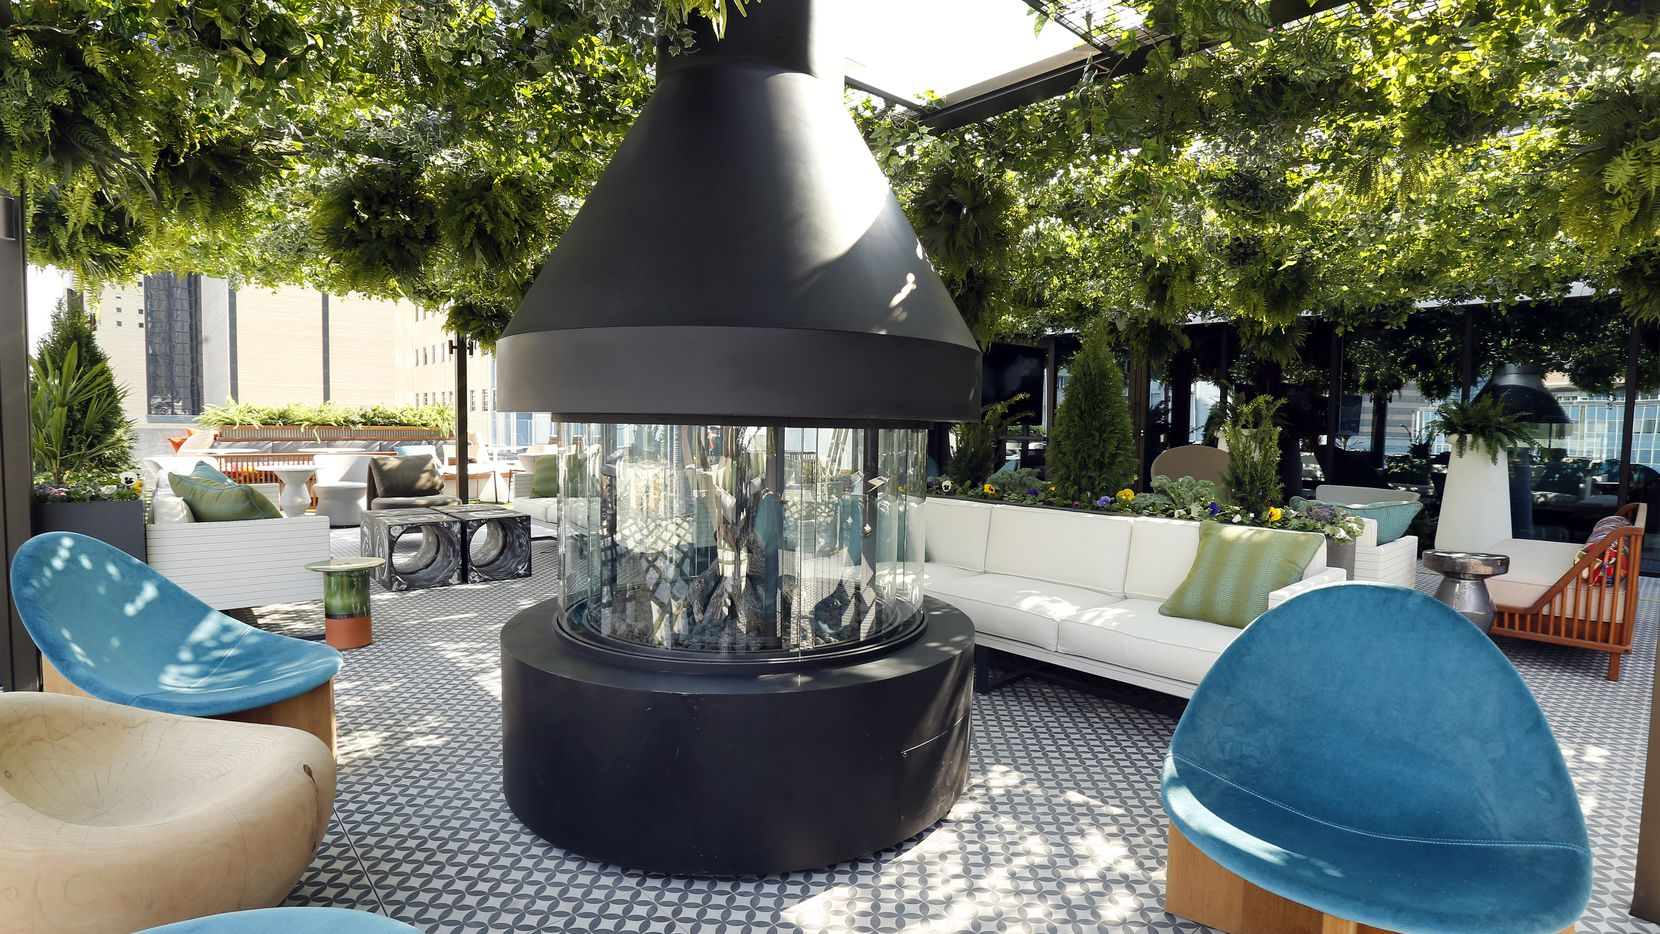 restaurants warm up their patios for